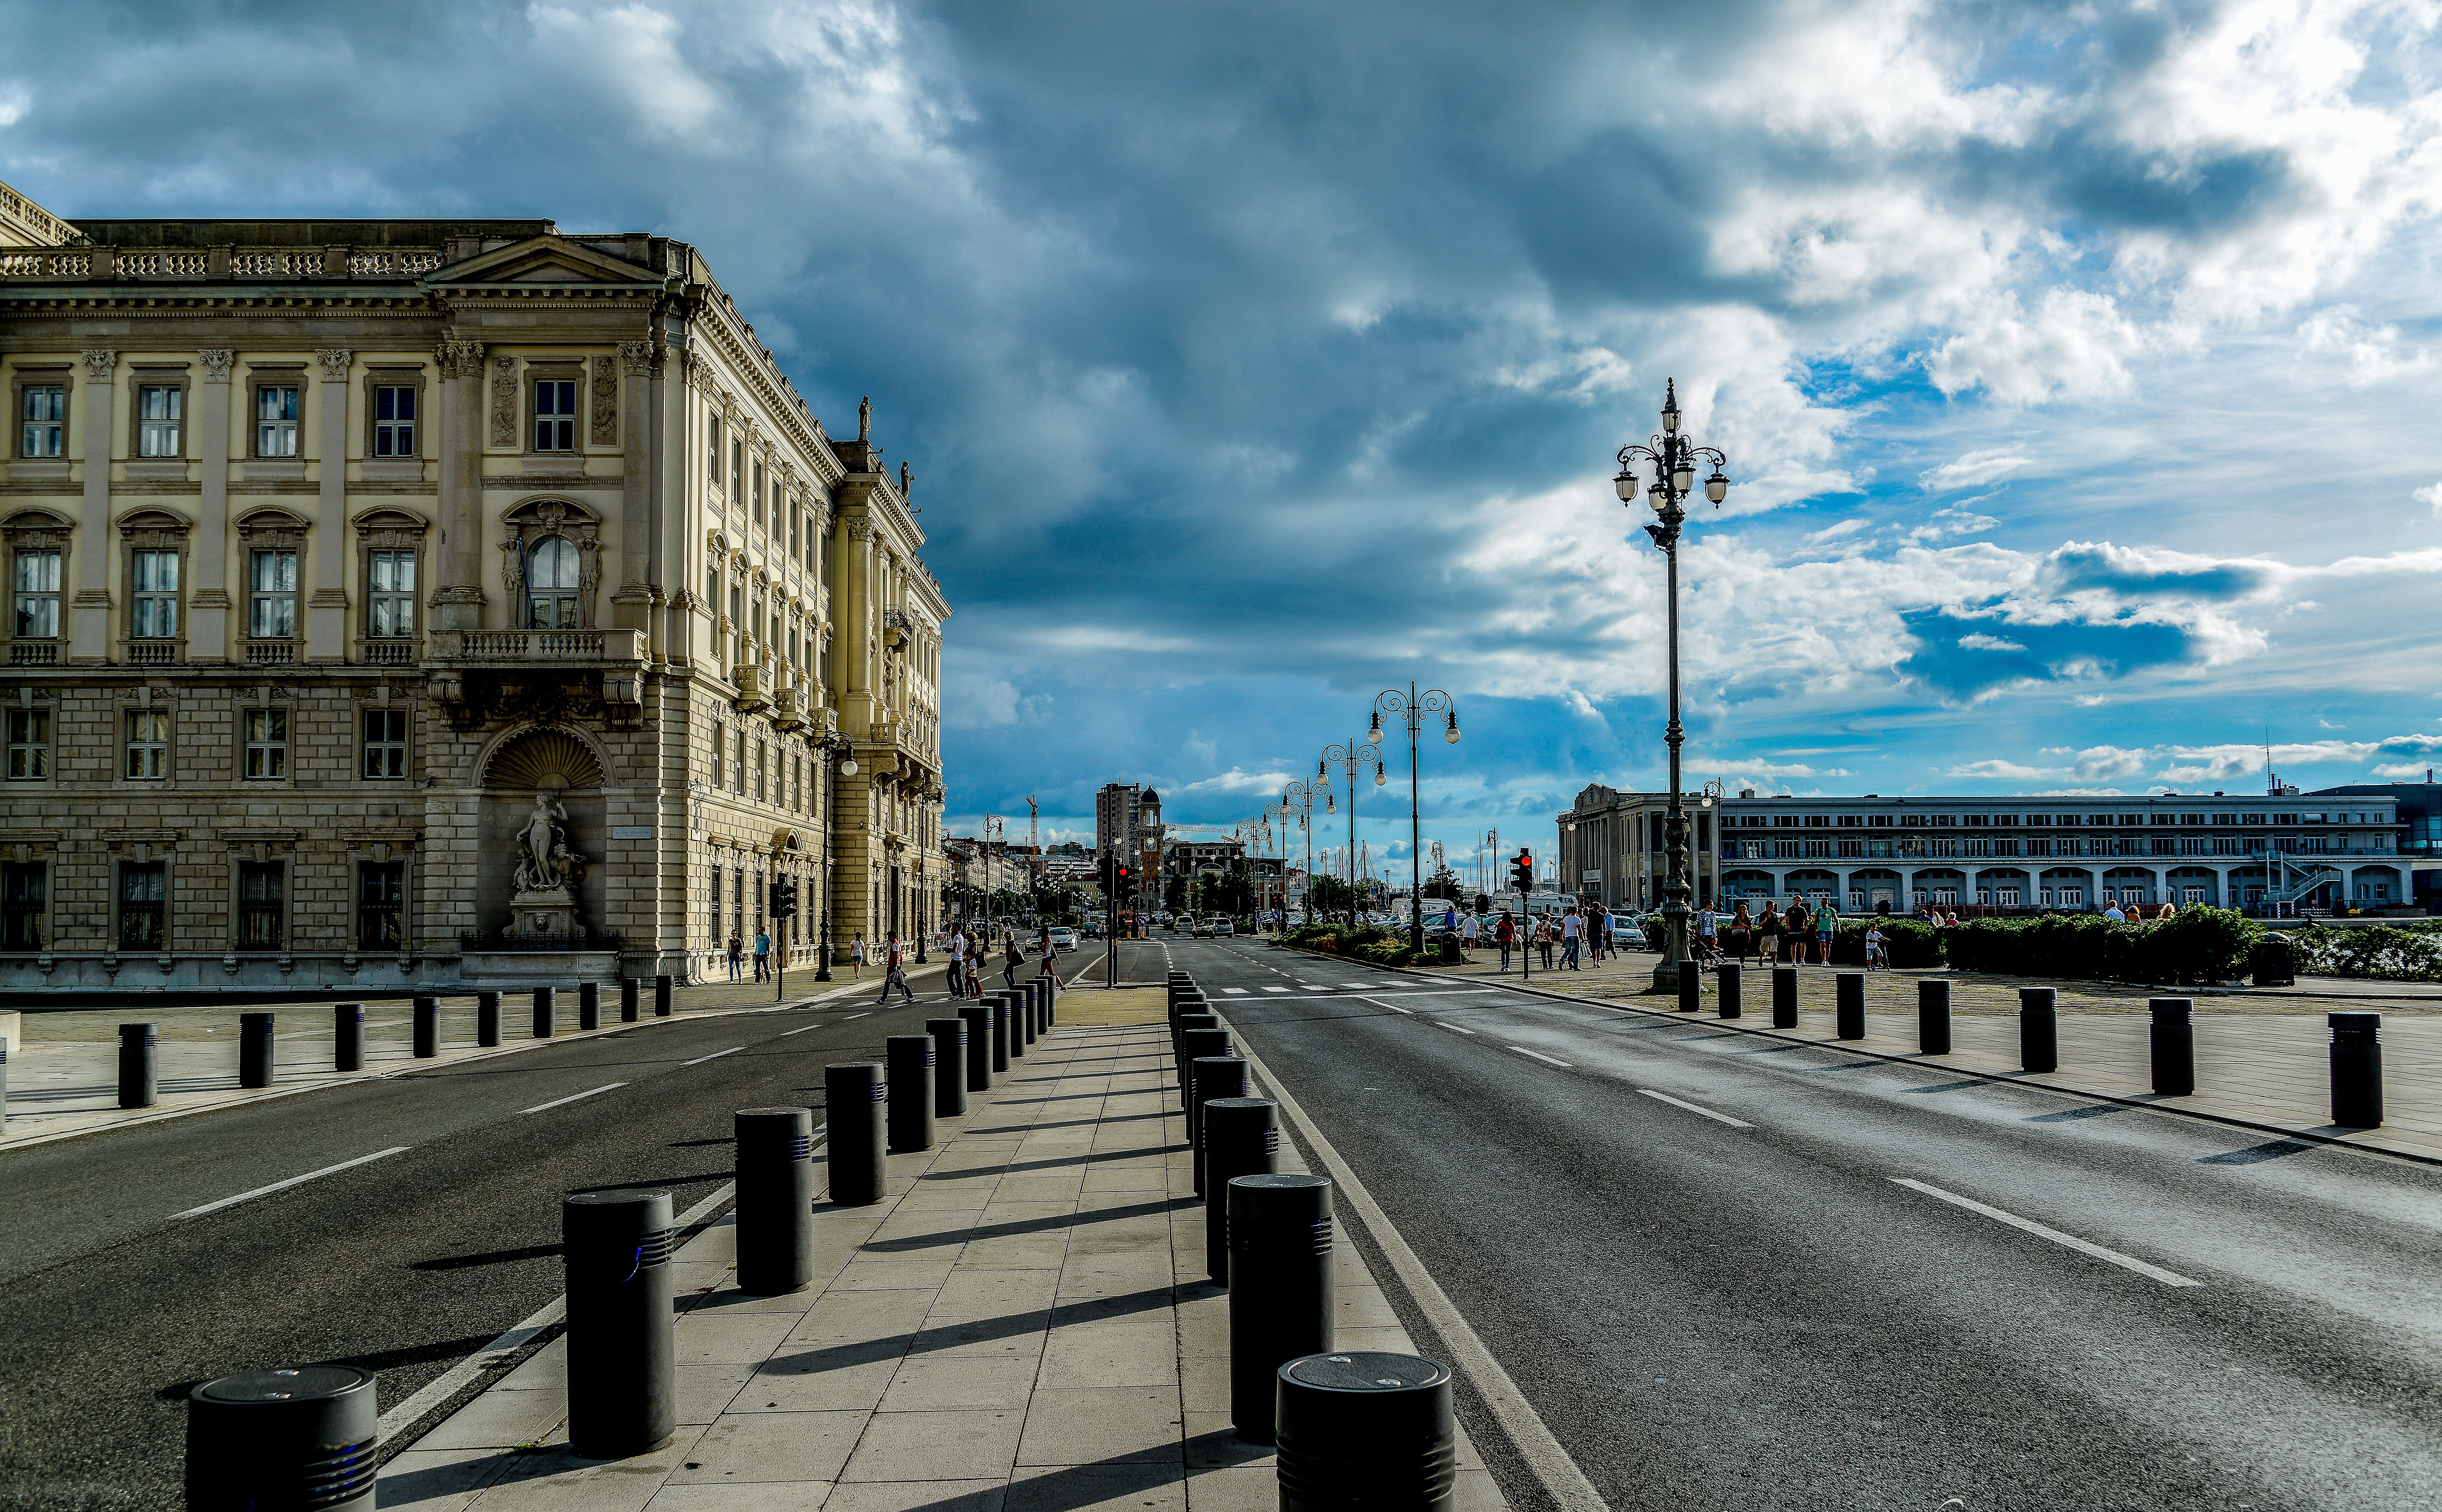 View of city street against cloudy sky photo